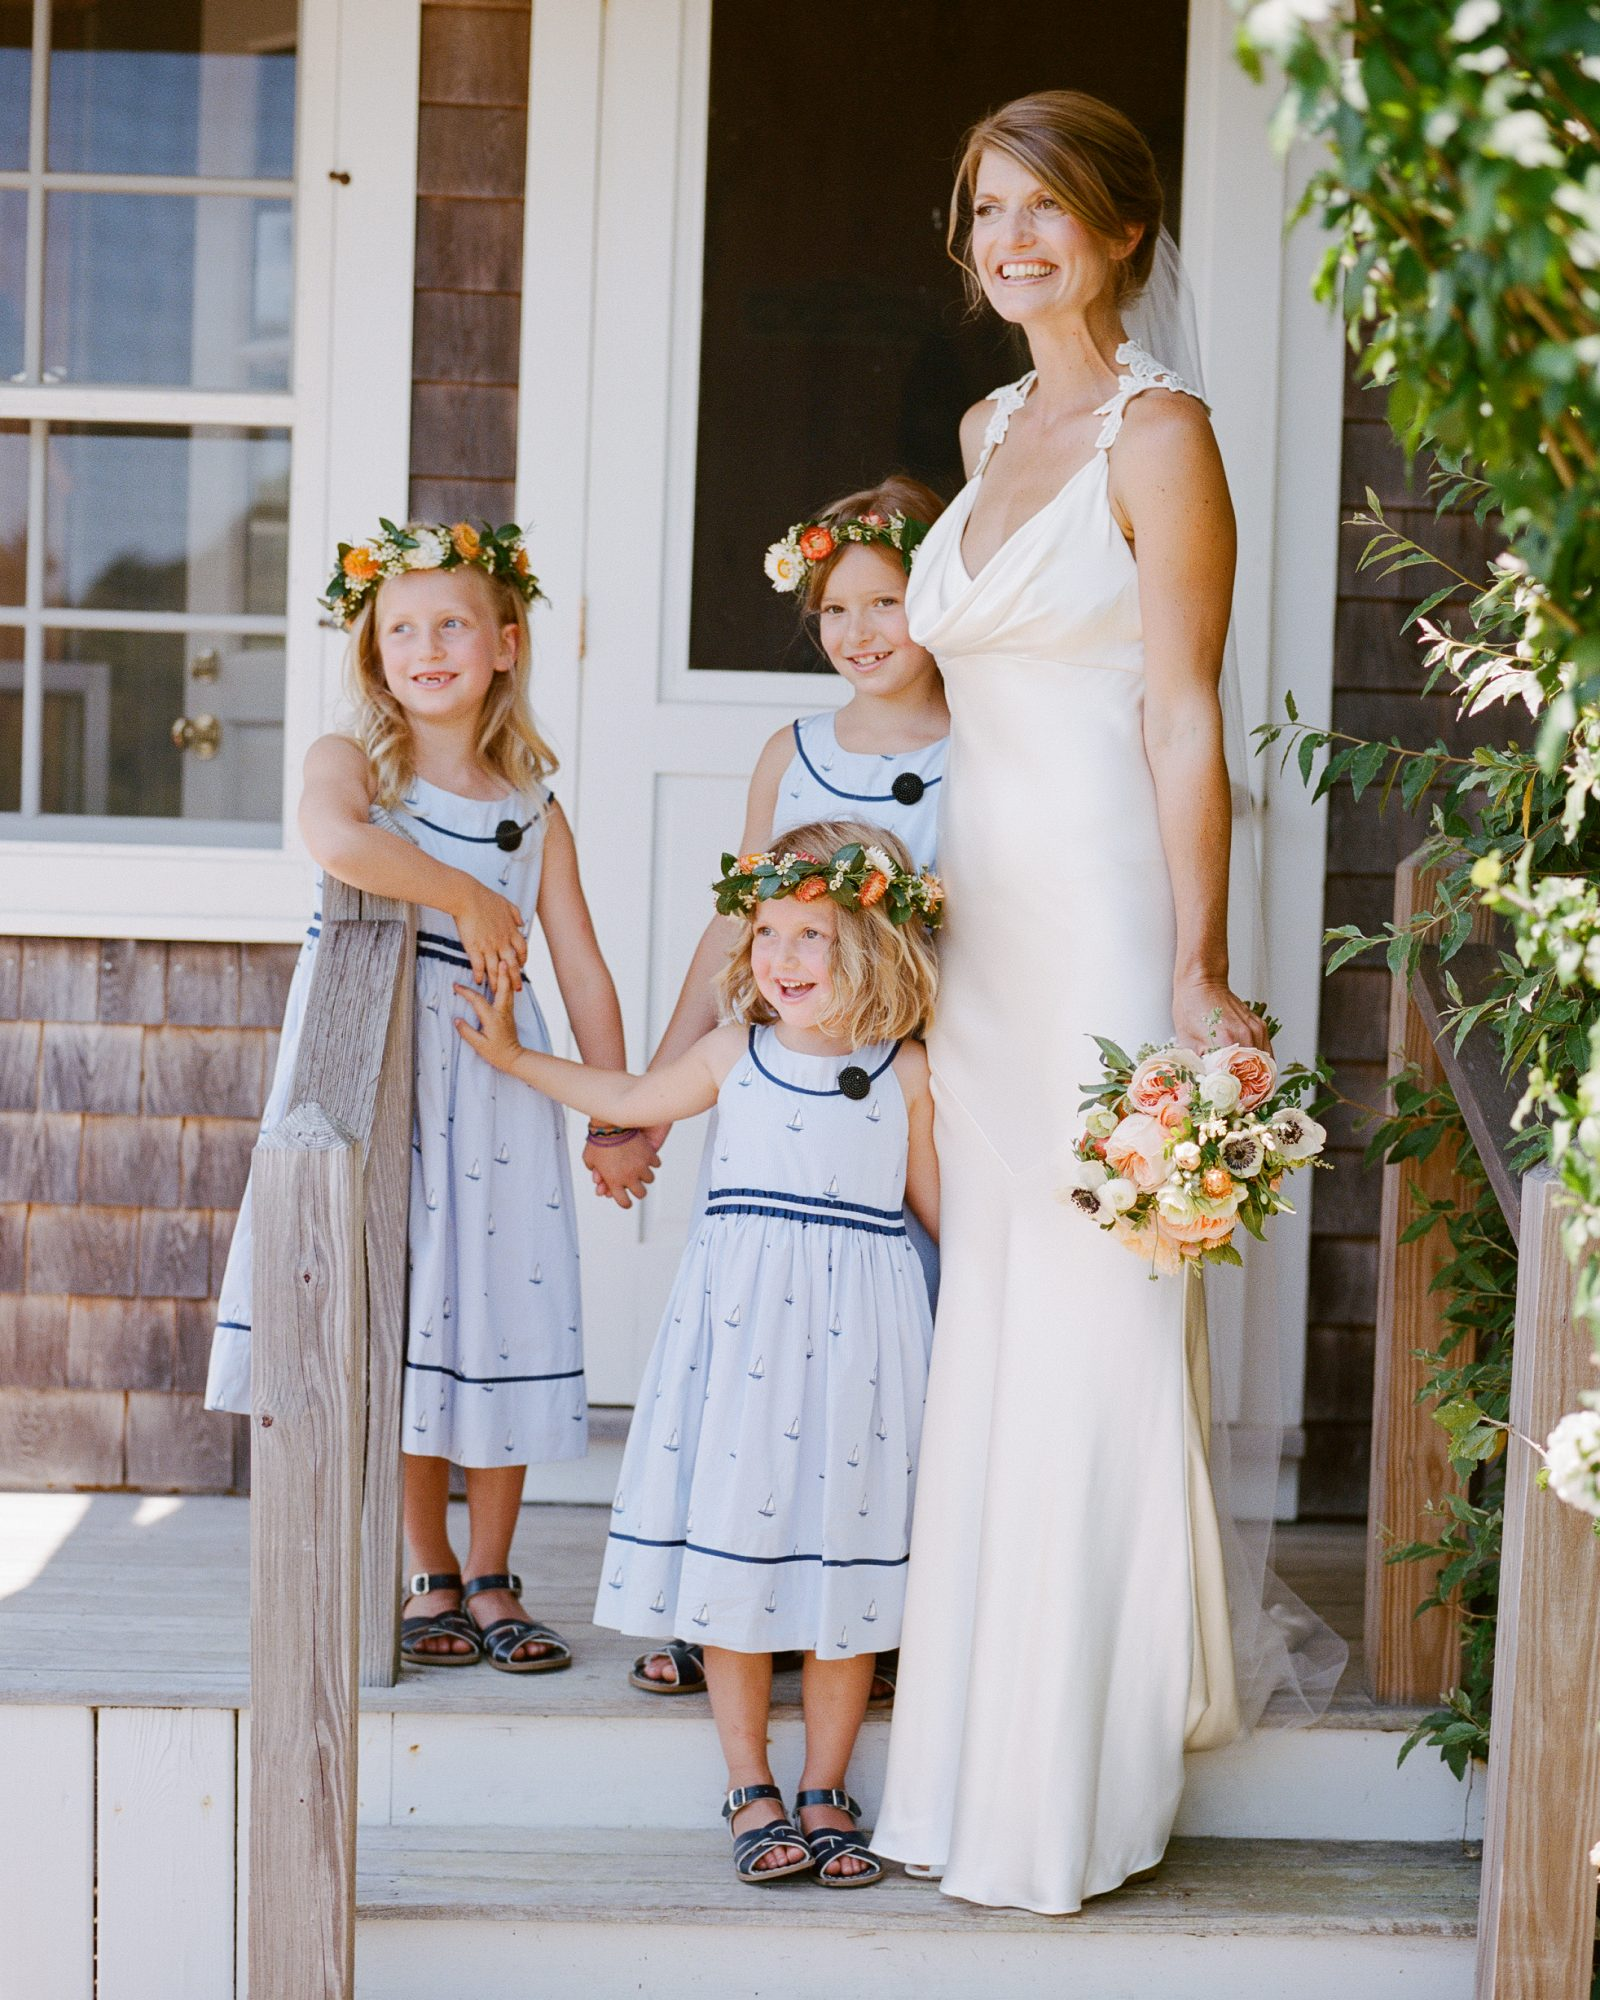 jocelyn-graham-wedding-flowergirls-0579-s111847-0315.jpg